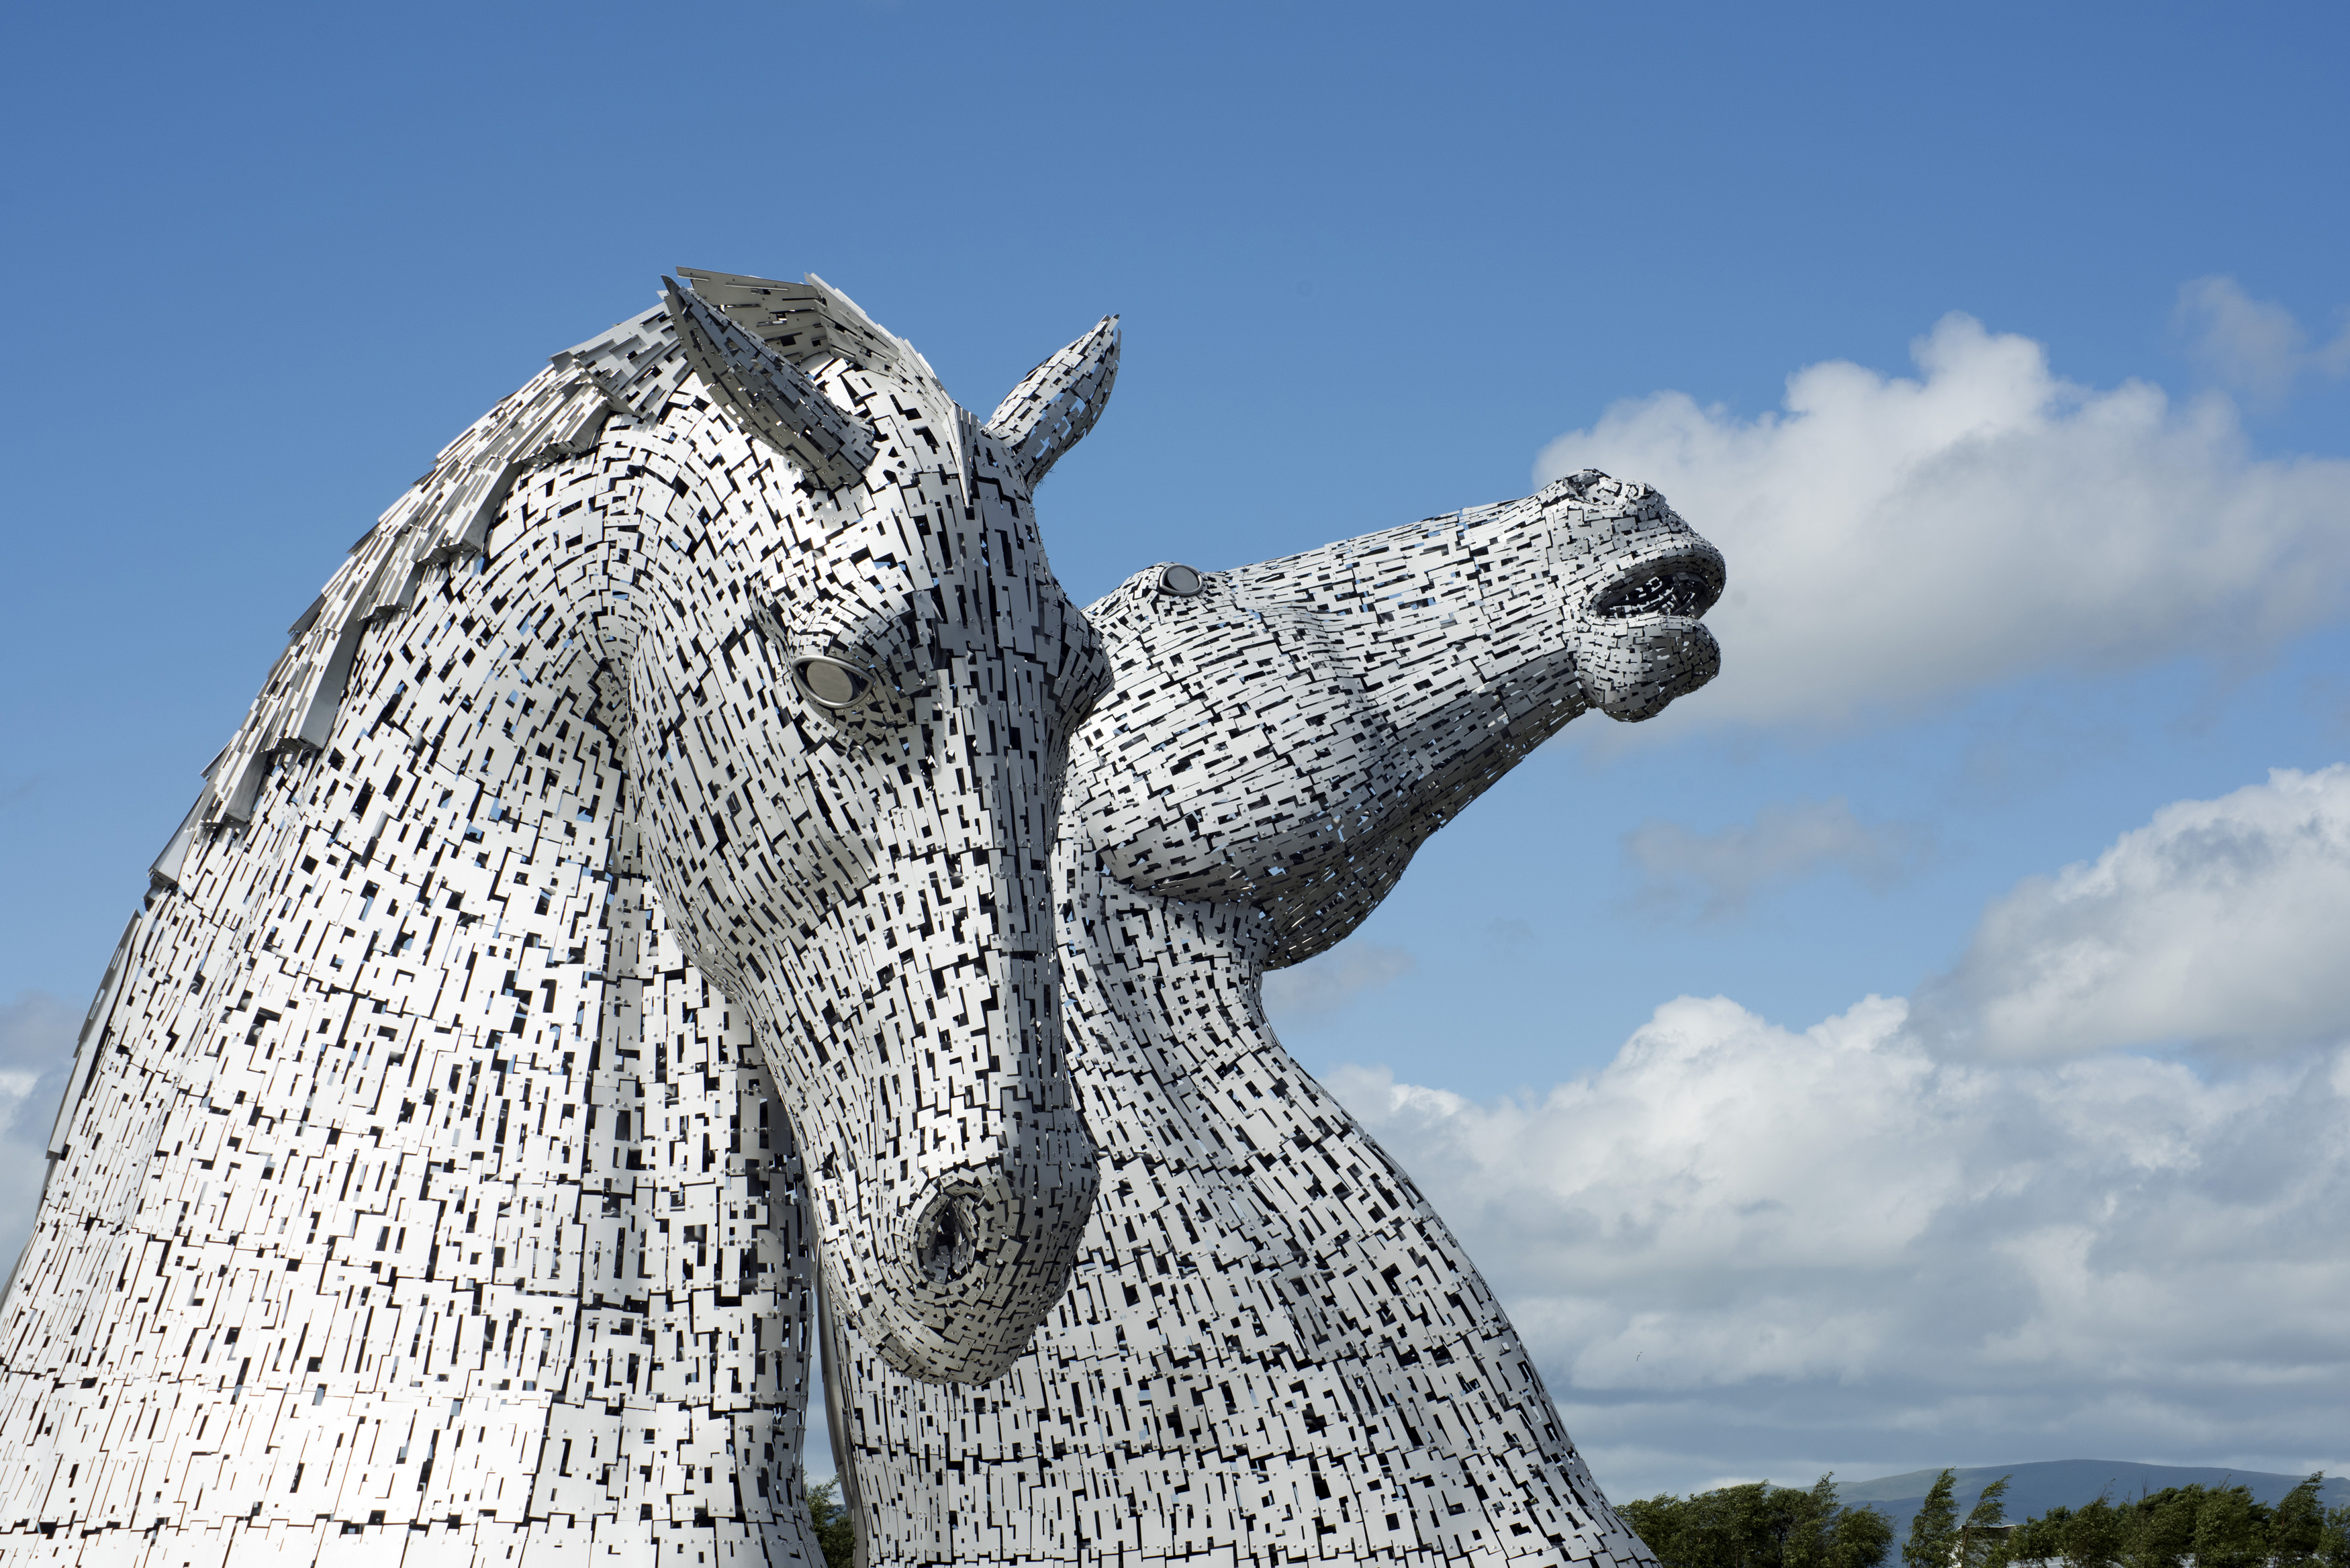 The Kelpies pair of horse head sculptures in Falkirk Scotland under summer sky with scattered clouds and copy space